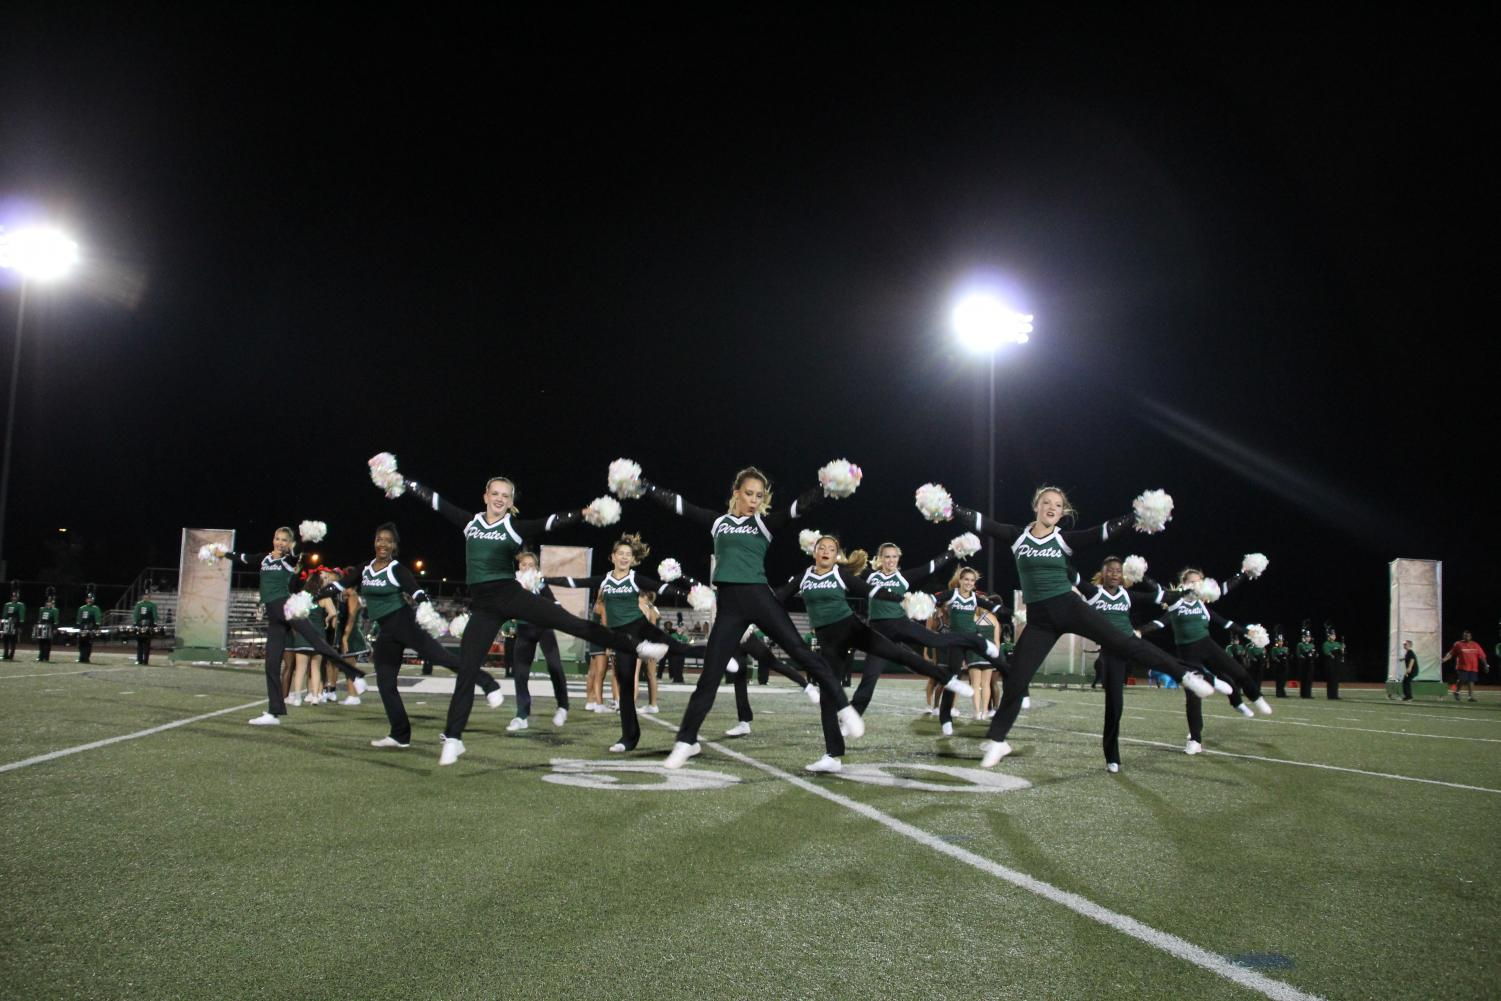 The Varsity Drill Team performs at a football game during the fall season.